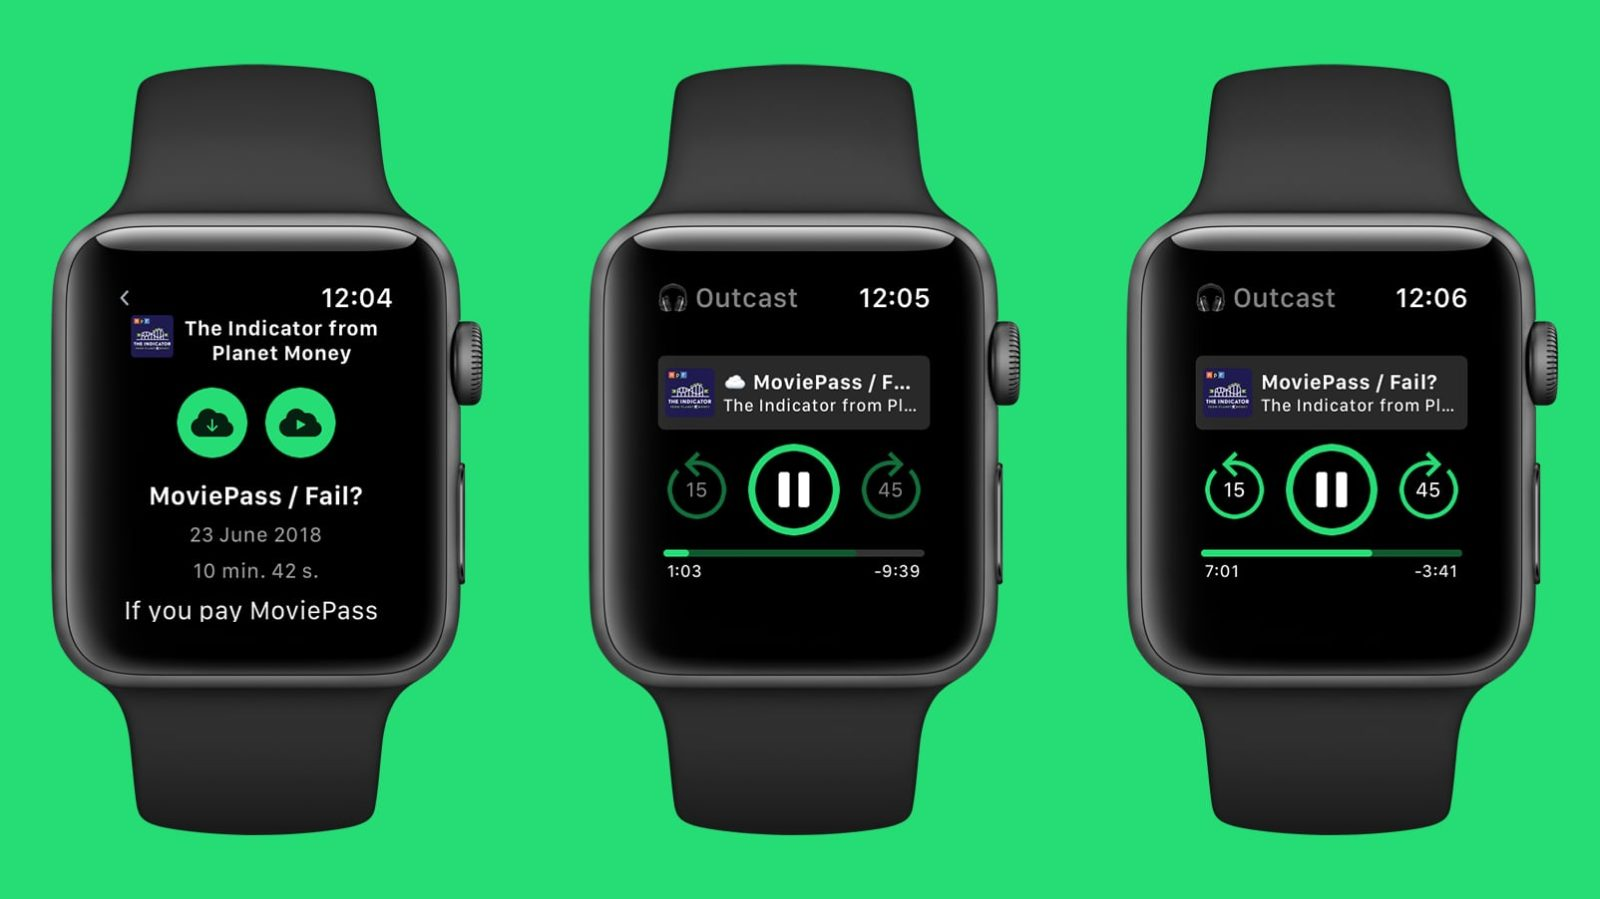 Outcast 2 adds podcast streaming and continuous playback playlists to Apple Watch